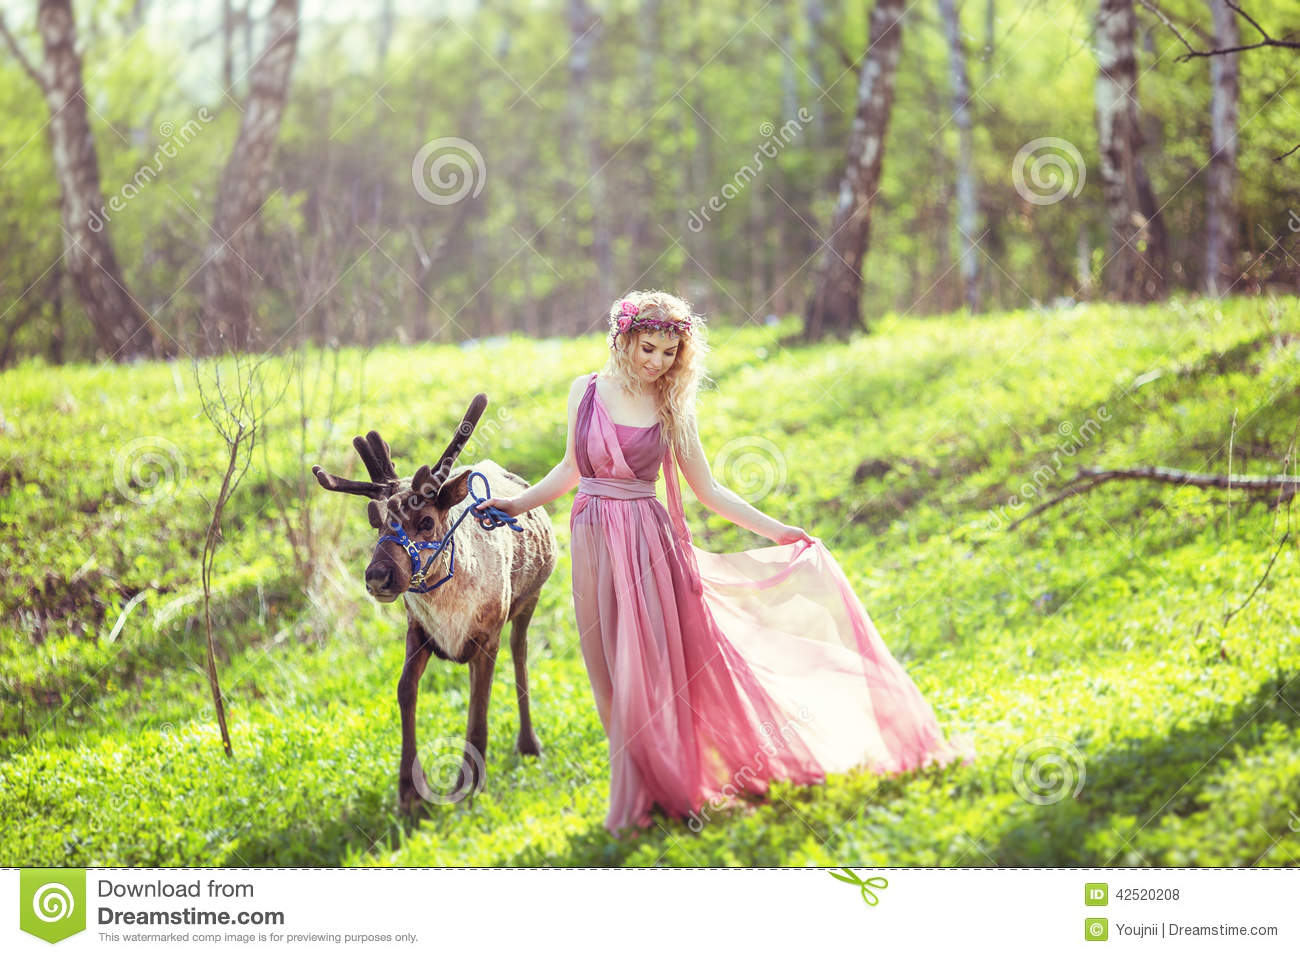 Blonde Girl In The Woods Wallpapers Girl In Fairy Dress With A Flowing Train Of Dress Walking